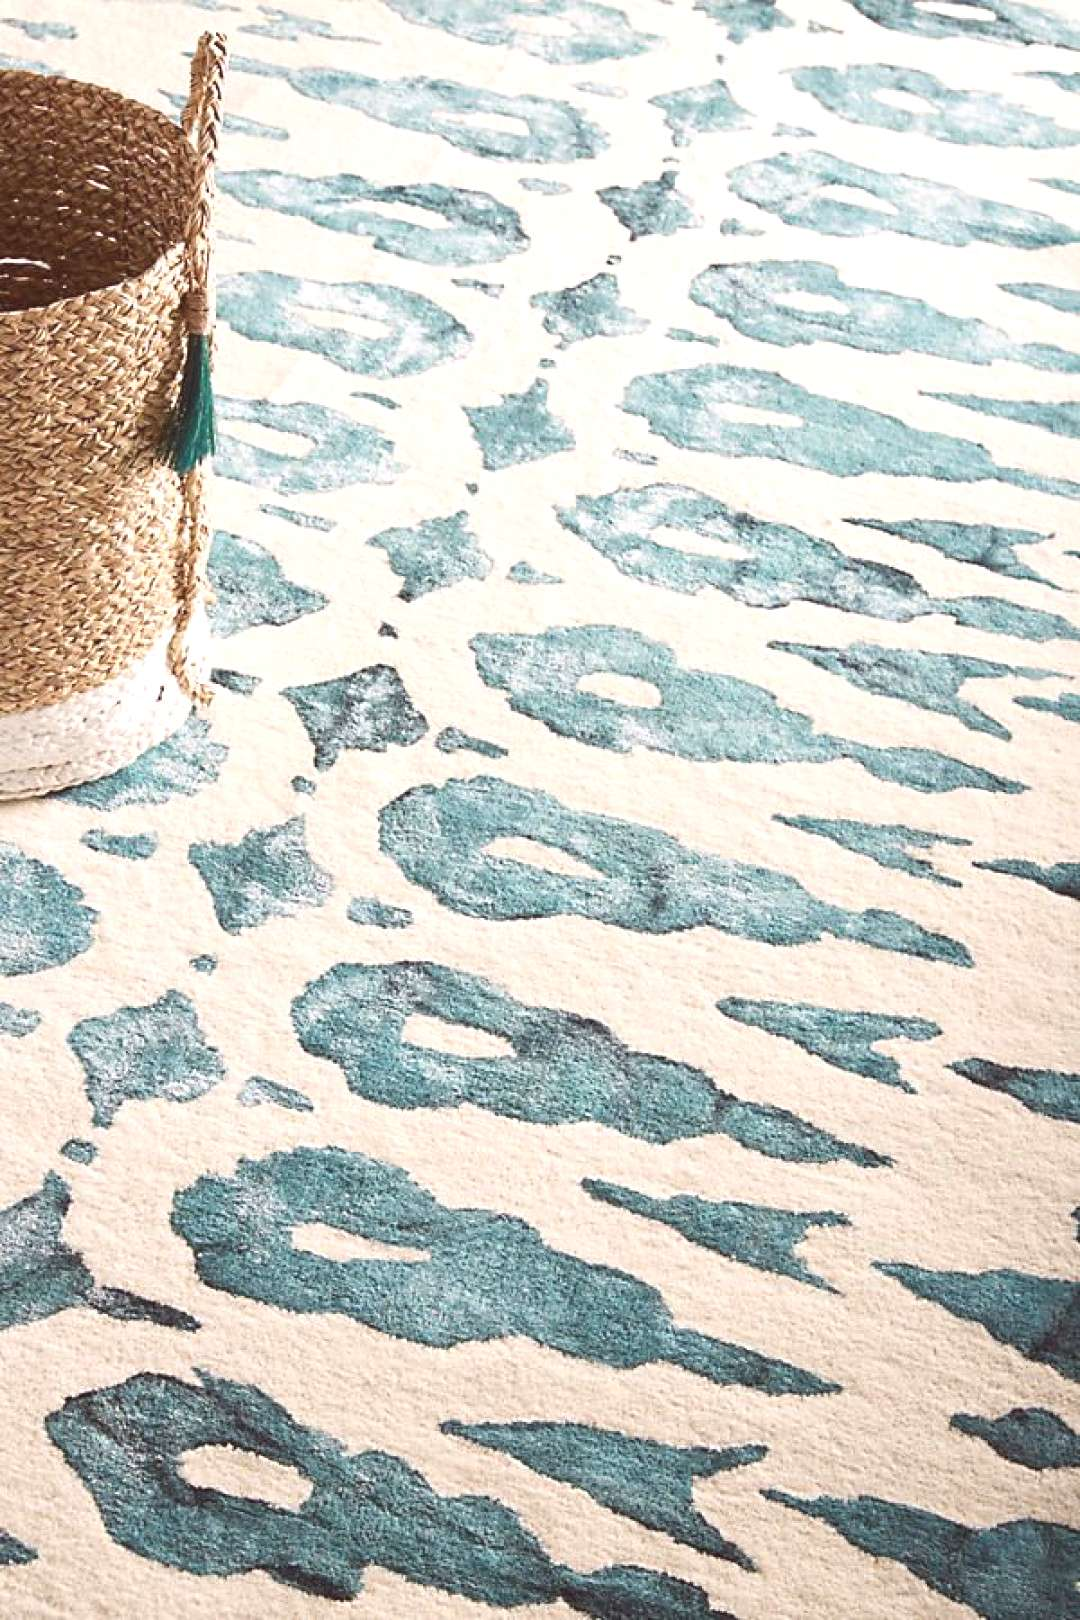 Tufted Ari Rug by Anthropologie in Blue, Rugs